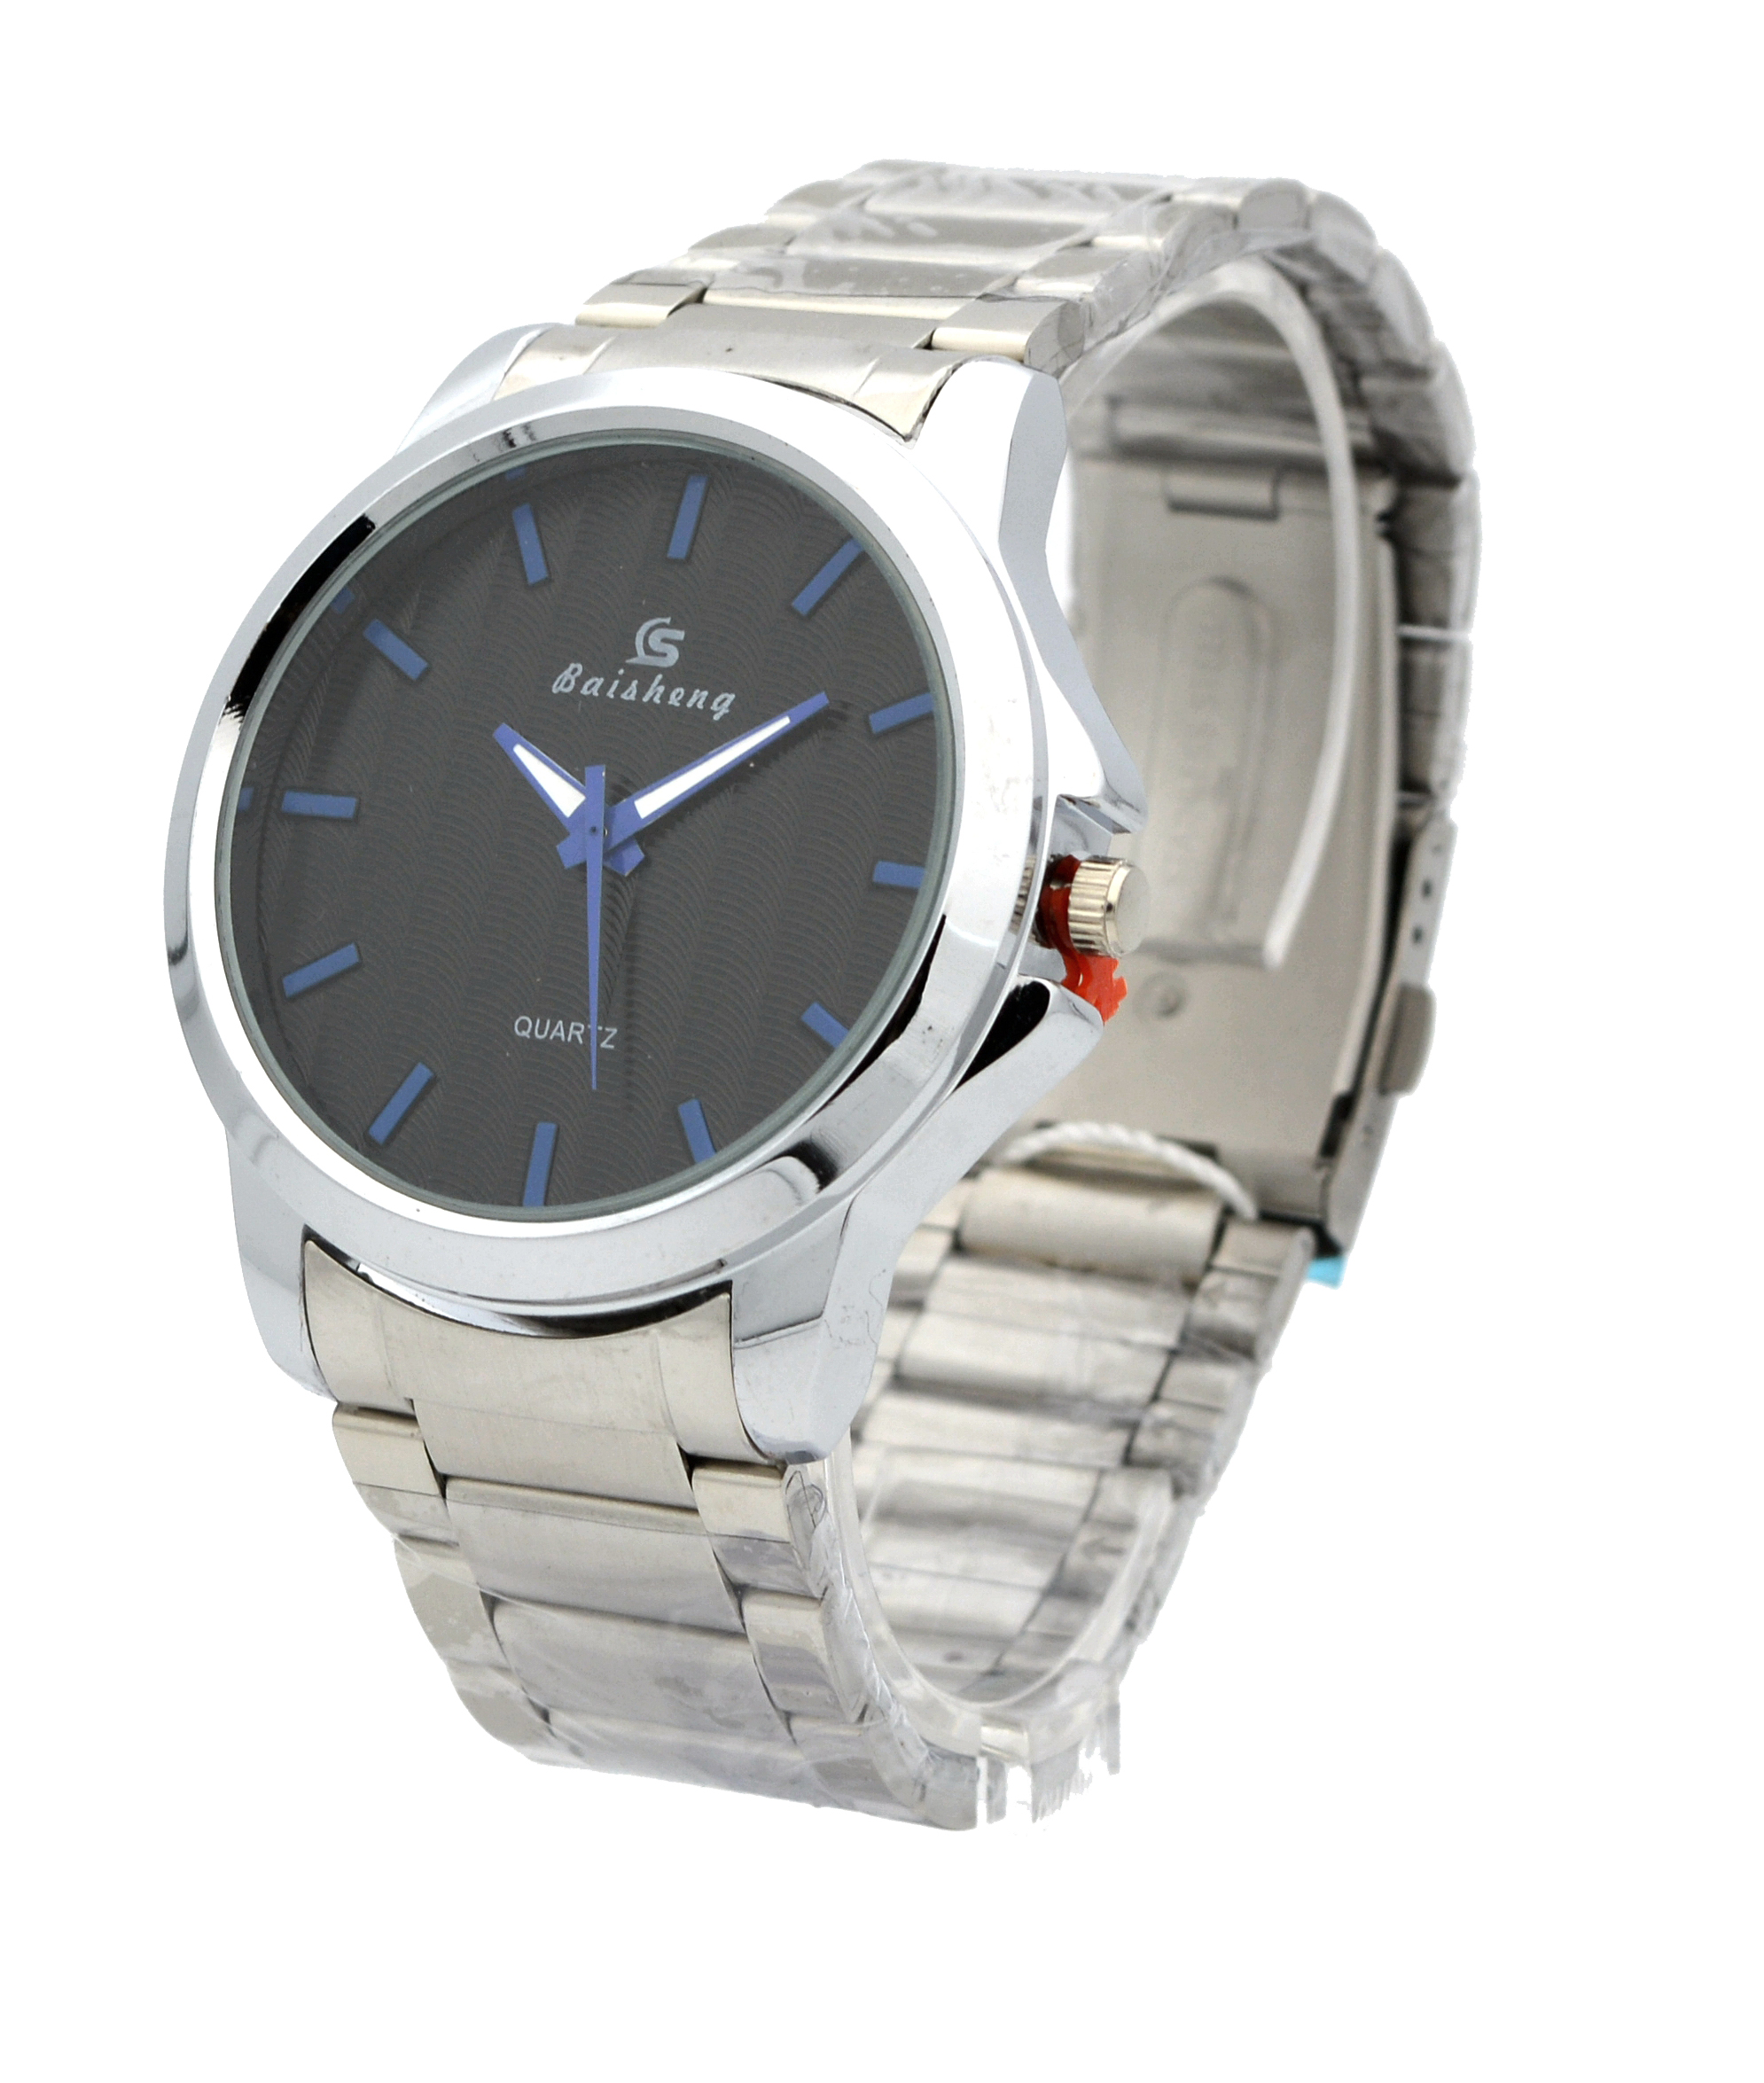 drop movt wrist nary watches couple japan manufacturer quartz brand classic supplier shipping watch